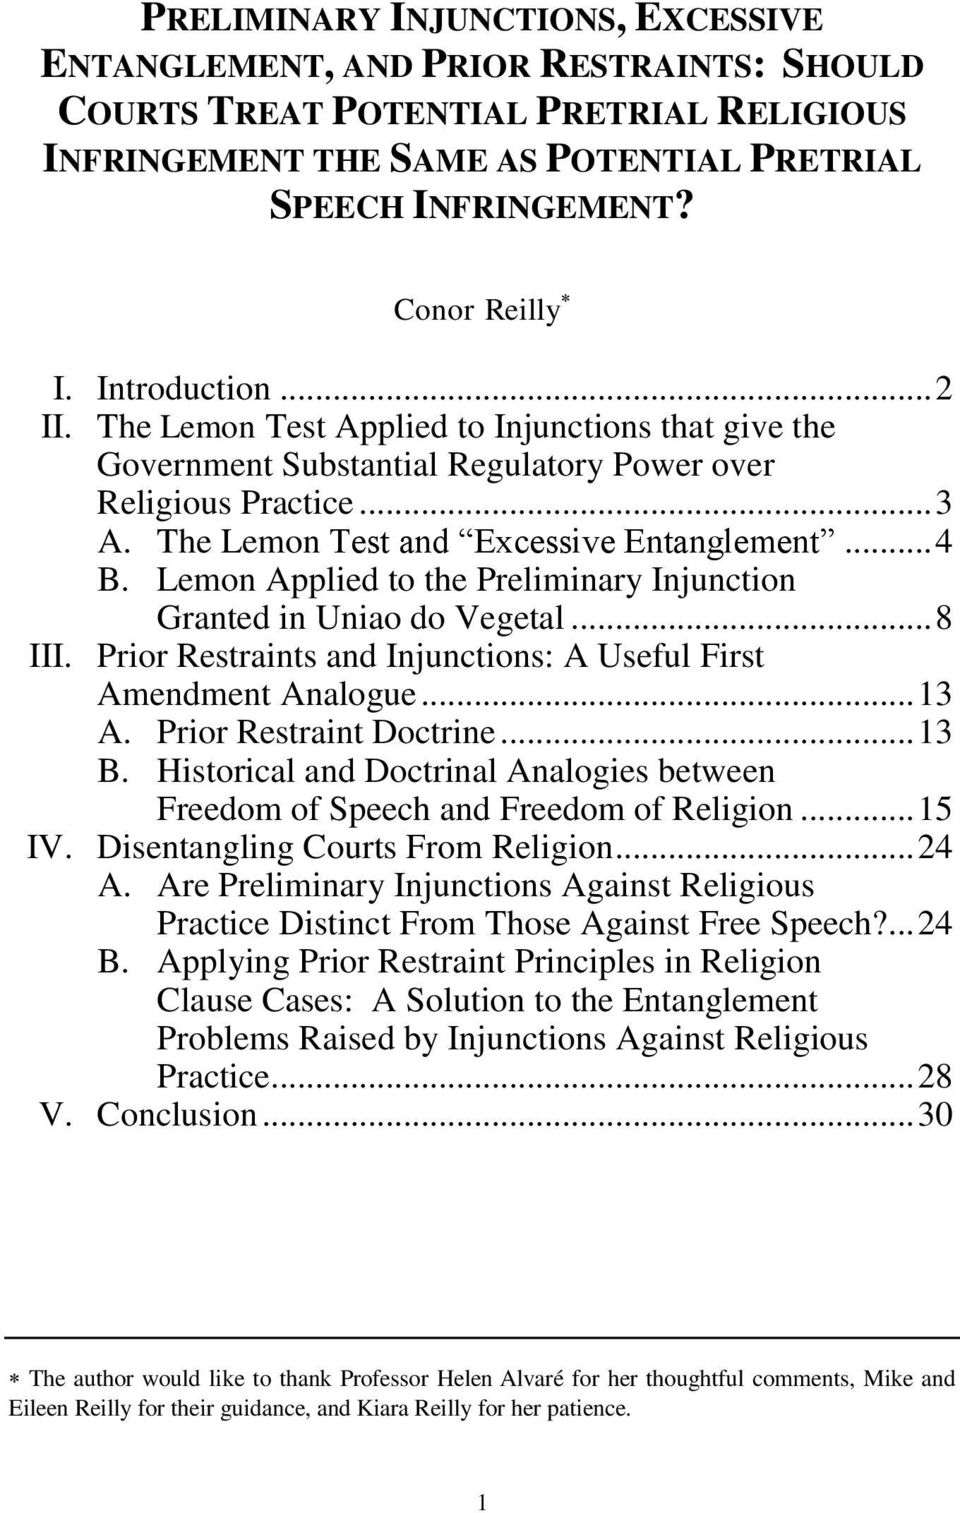 Lemon Applied to the Preliminary Injunction Granted in Uniao do Vegetal... 8 III. Prior Restraints and Injunctions: A Useful First Amendment Analogue... 13 A. Prior Restraint Doctrine... 13 B.